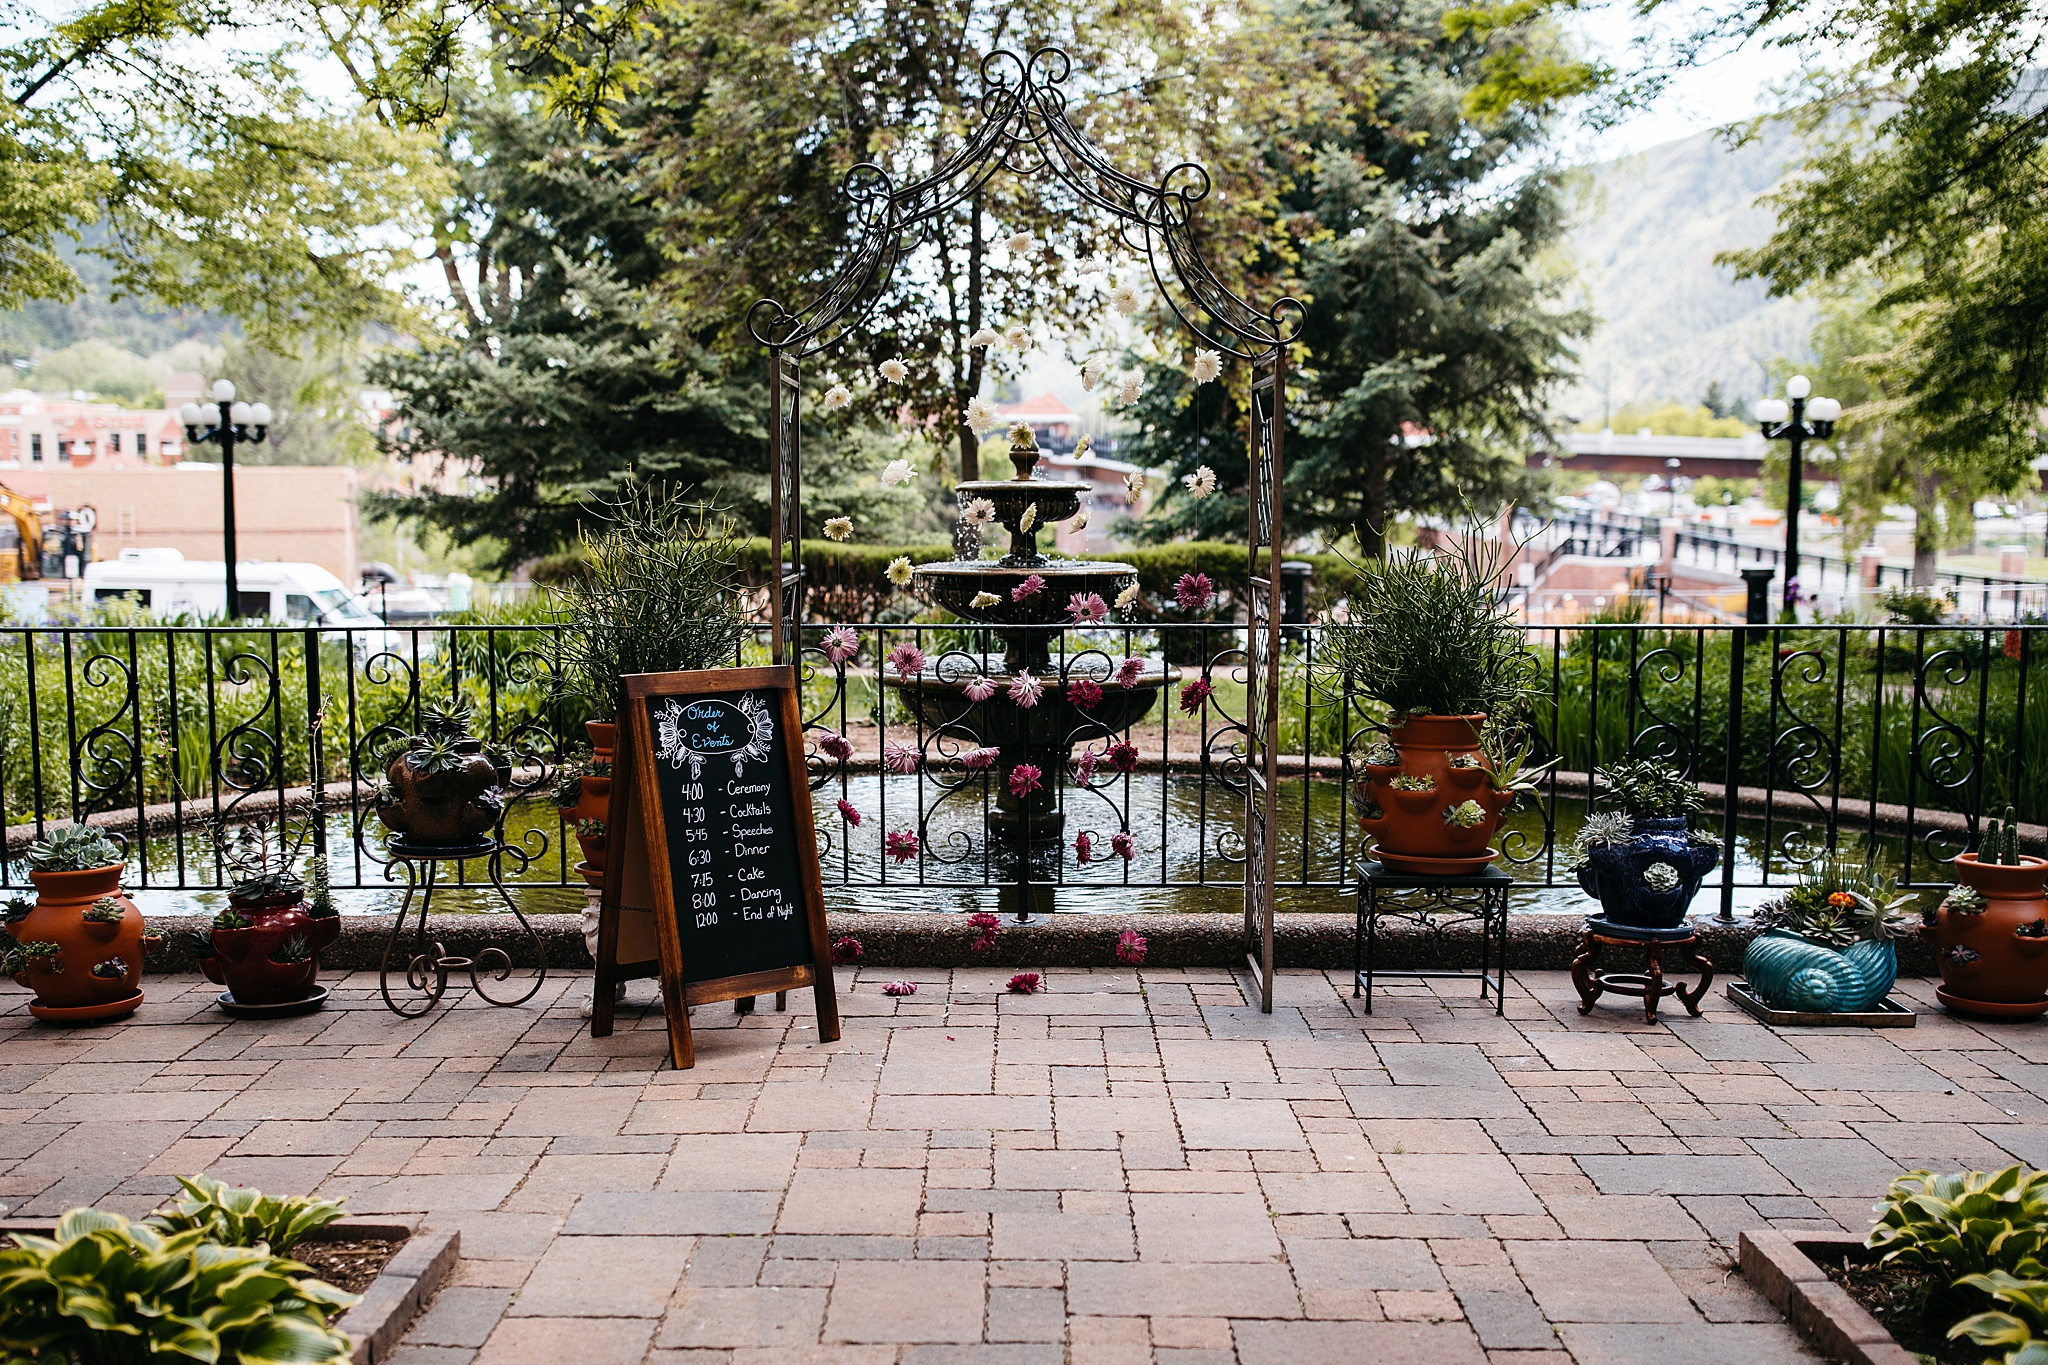 Val + Larry's ceremony site at the Hotel Colorado in the main courtyard.